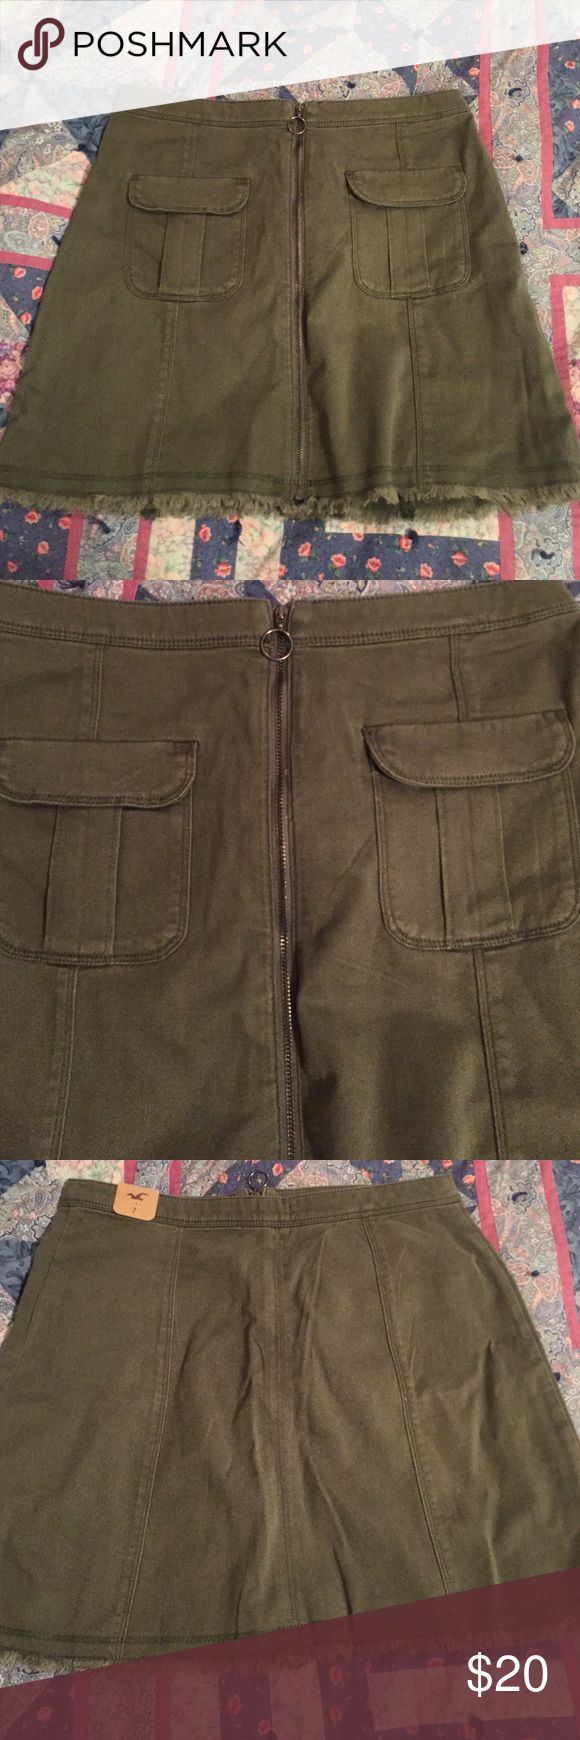 Hollister skirt Fits high rise, the zipper zips all the way down and bottom is intentionally frayed, army green Hollister Skirts